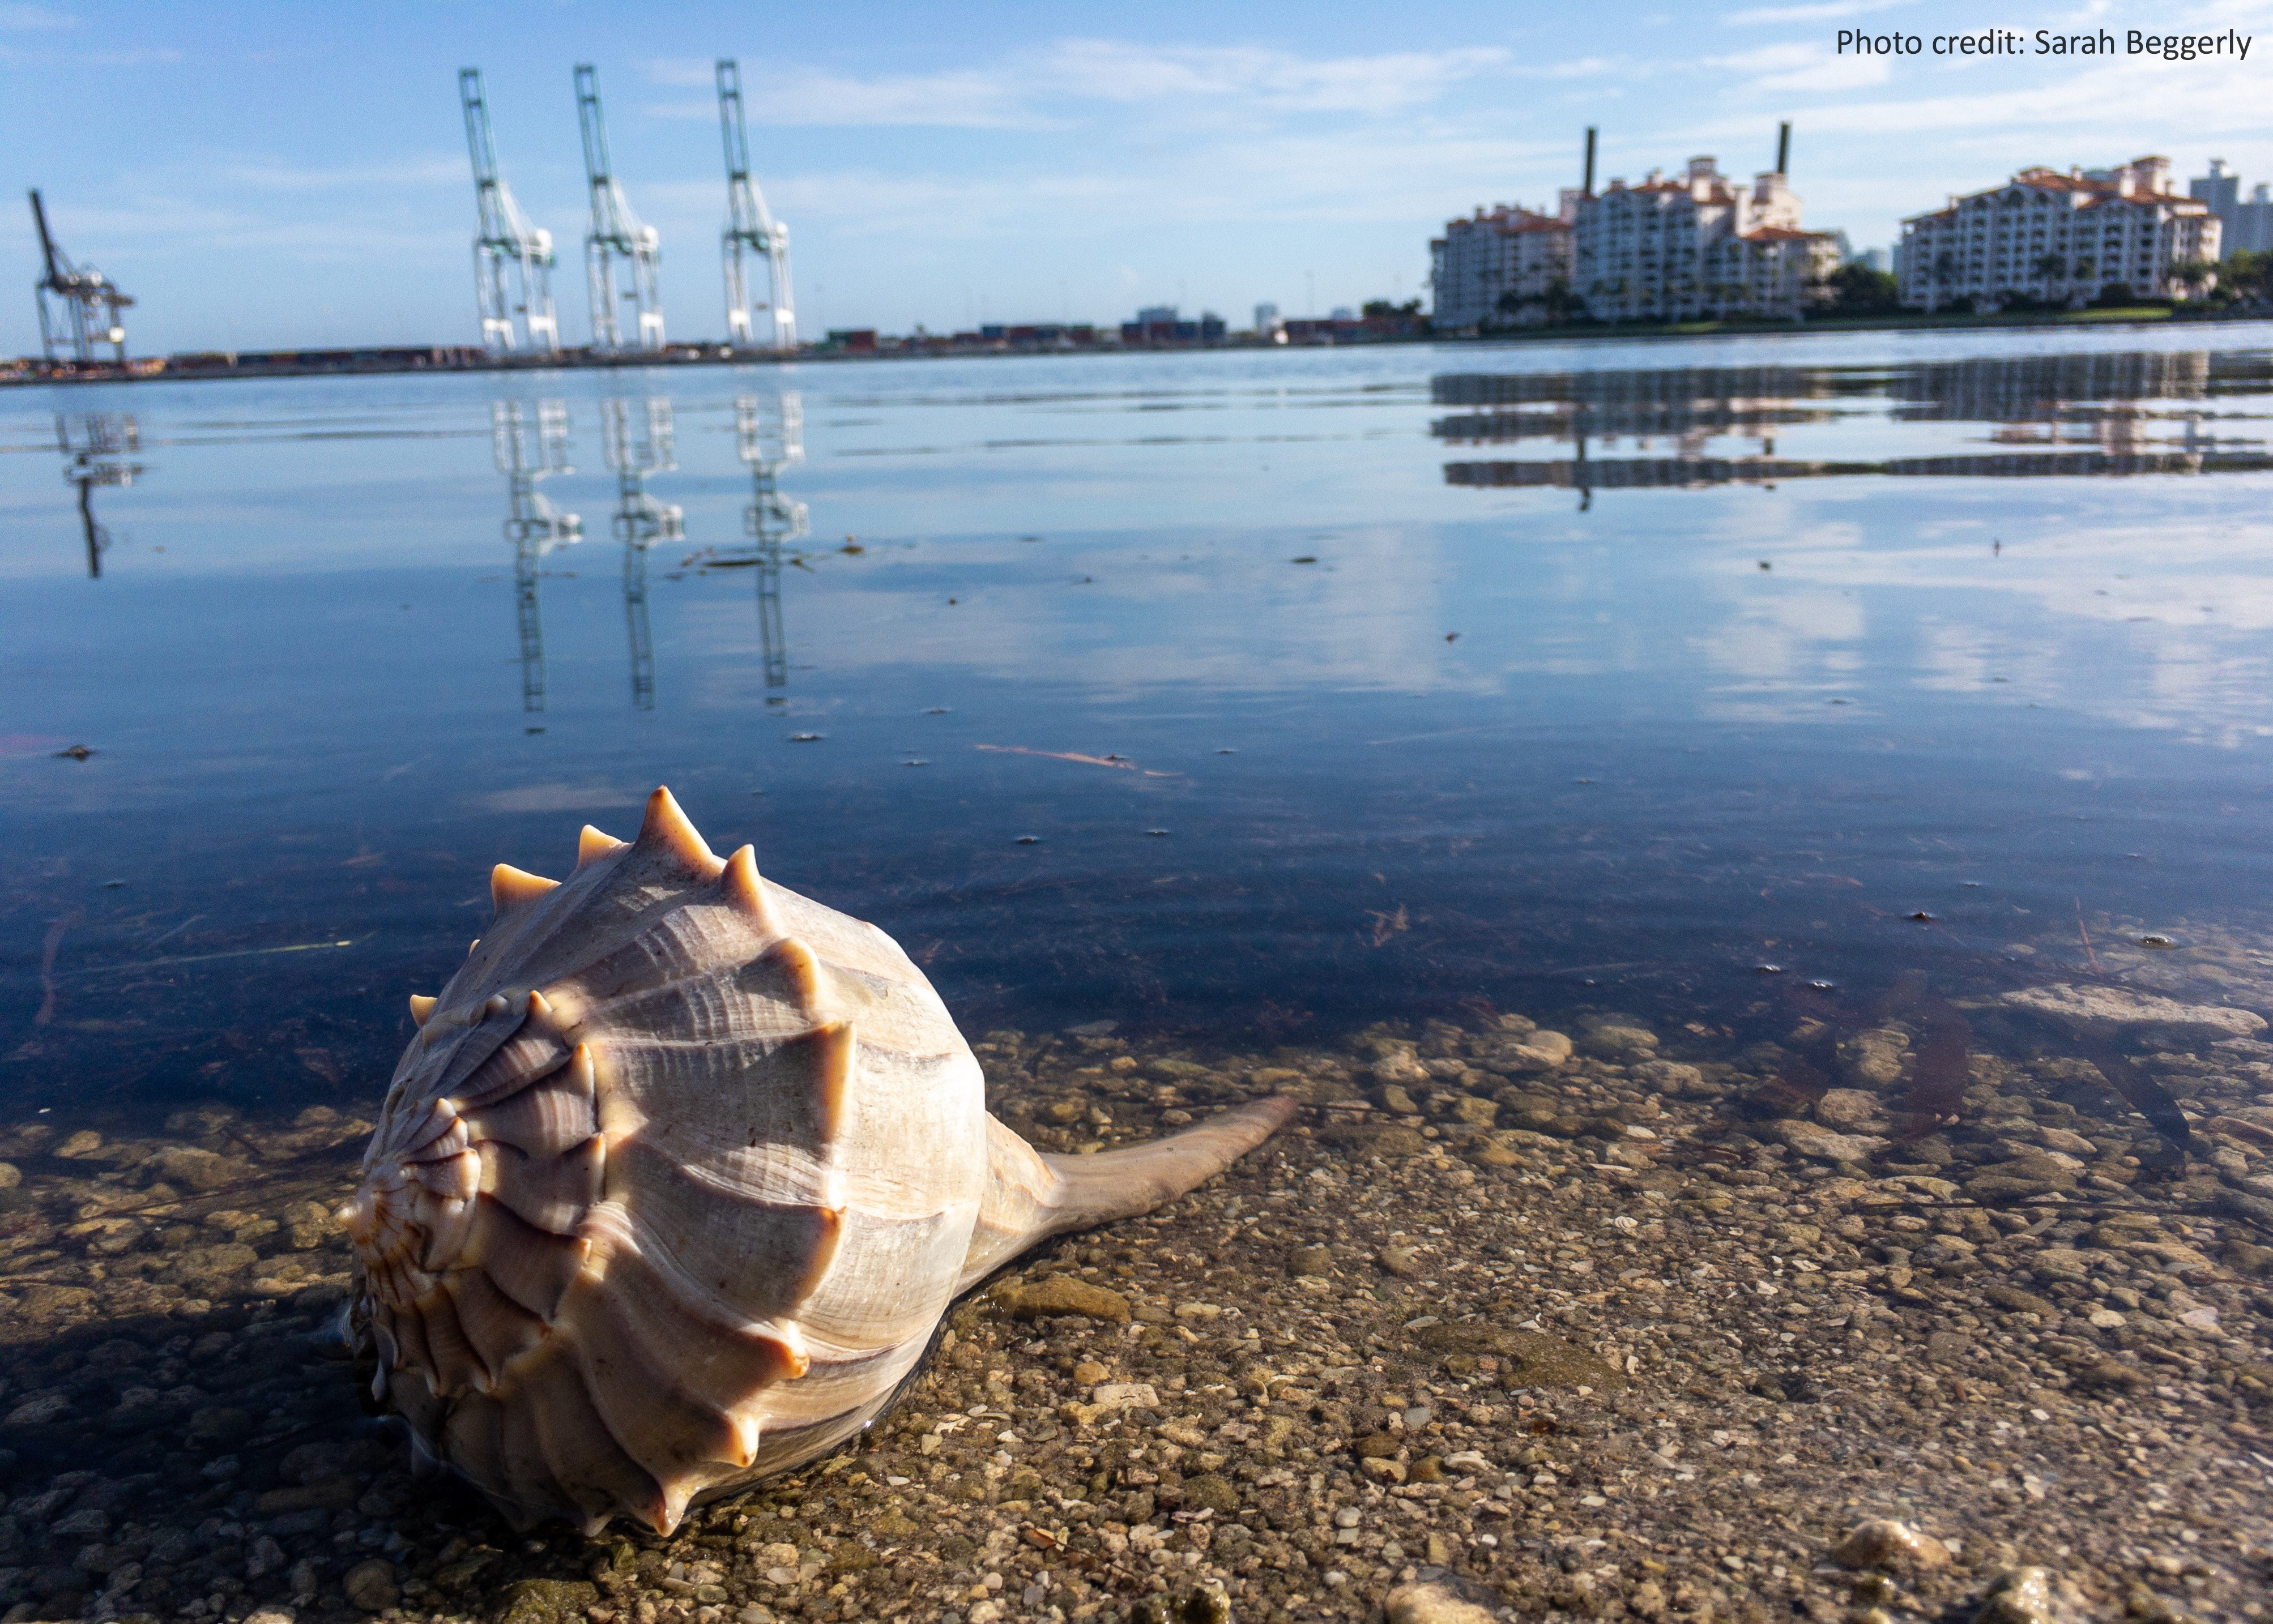 Whelk in the shadow of the Port of Miami, Florida